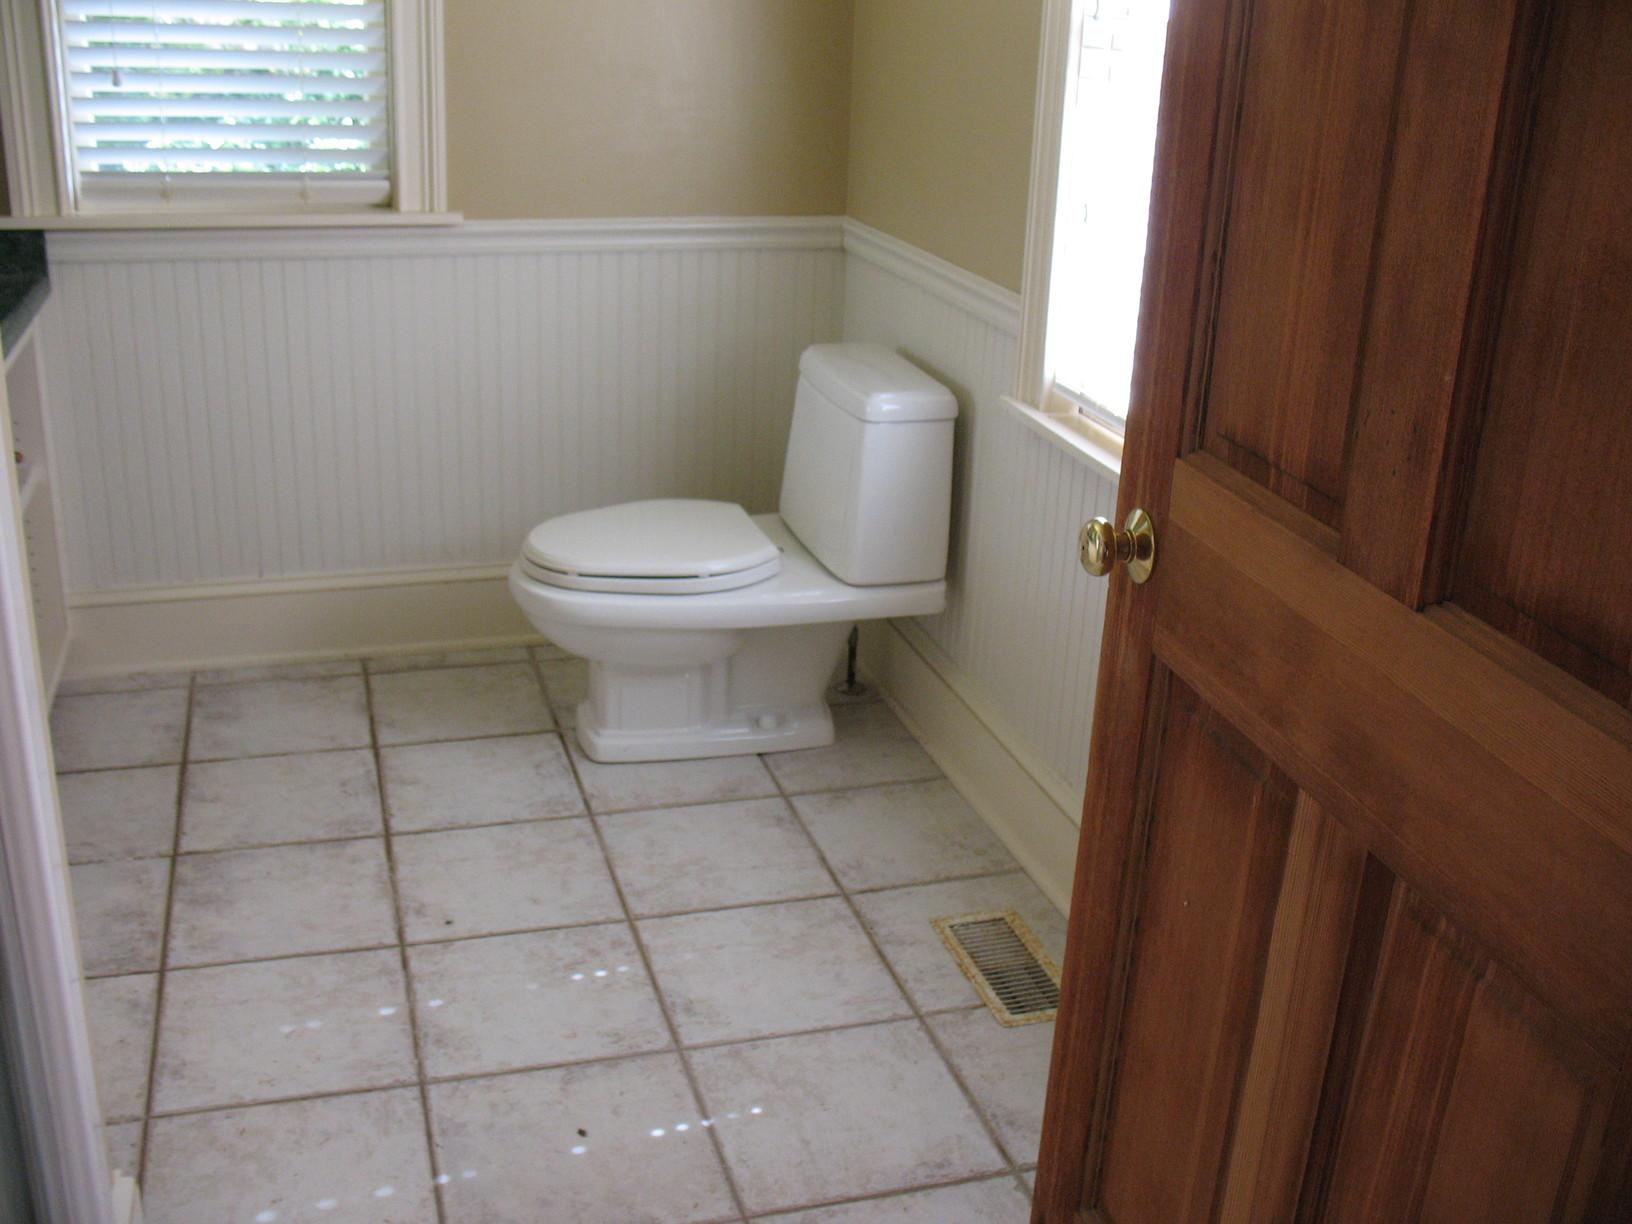 Historic Home bathroom repair - After Photo